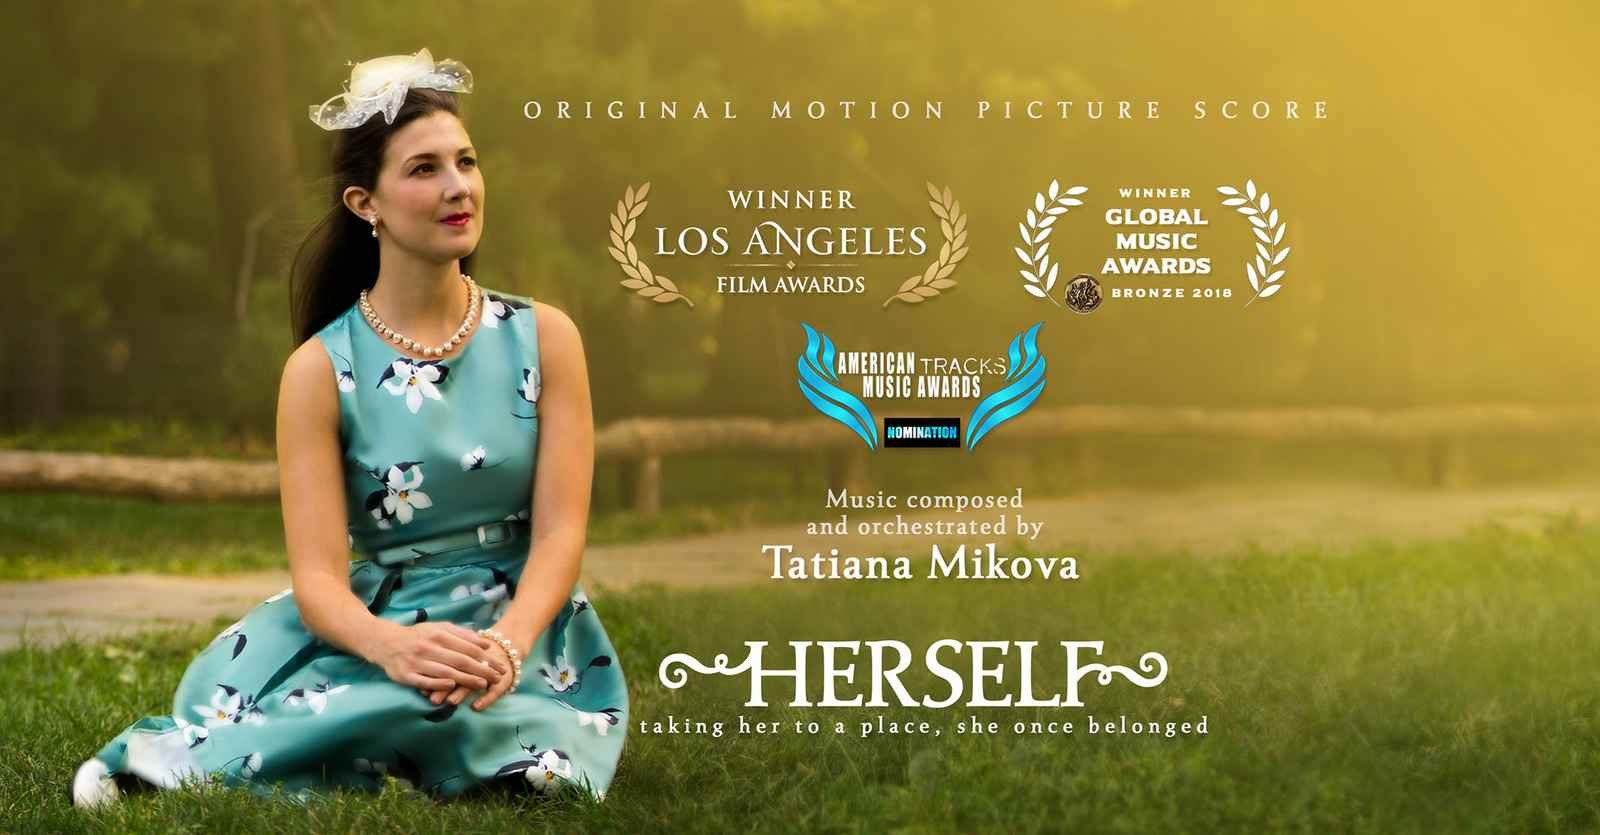 Tatiana Mikova won the Los Angeles Film Award for her score for the film 'Herself'.